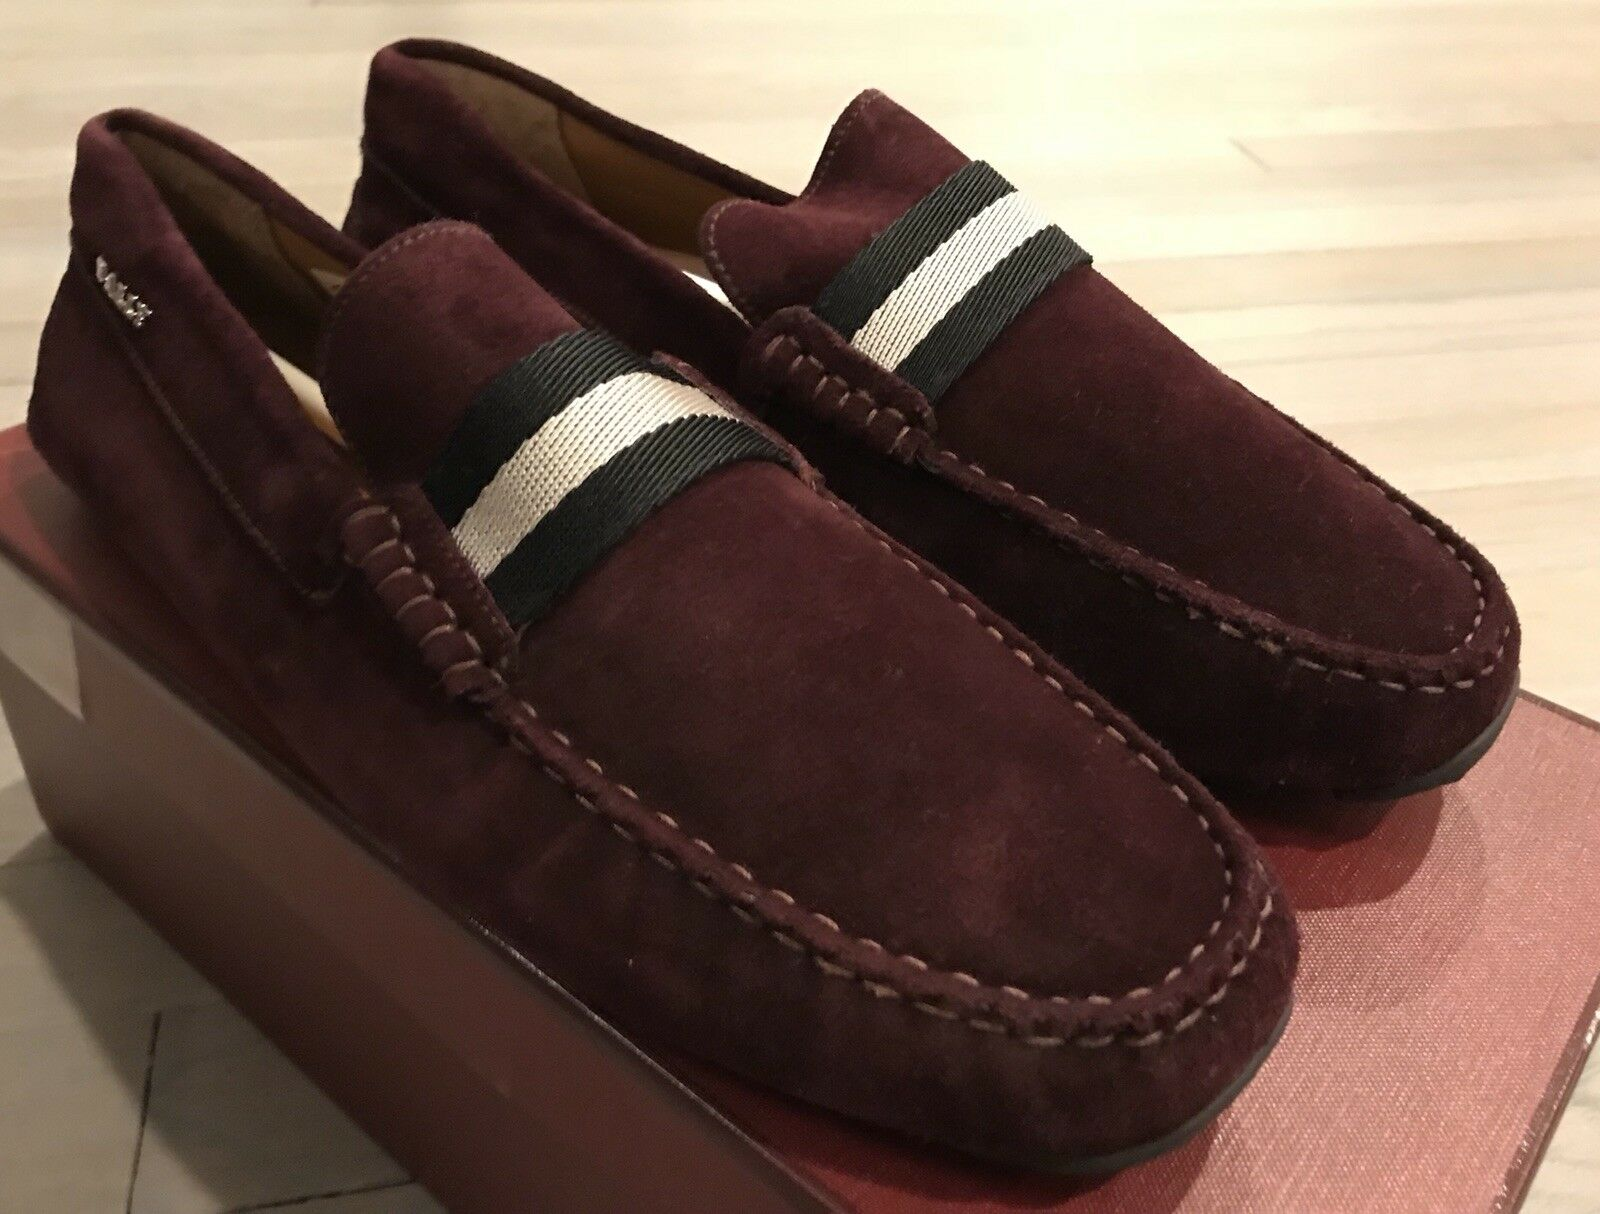 550  Bally Pearce Merlot Suede Driver Size US 10.5 Made in